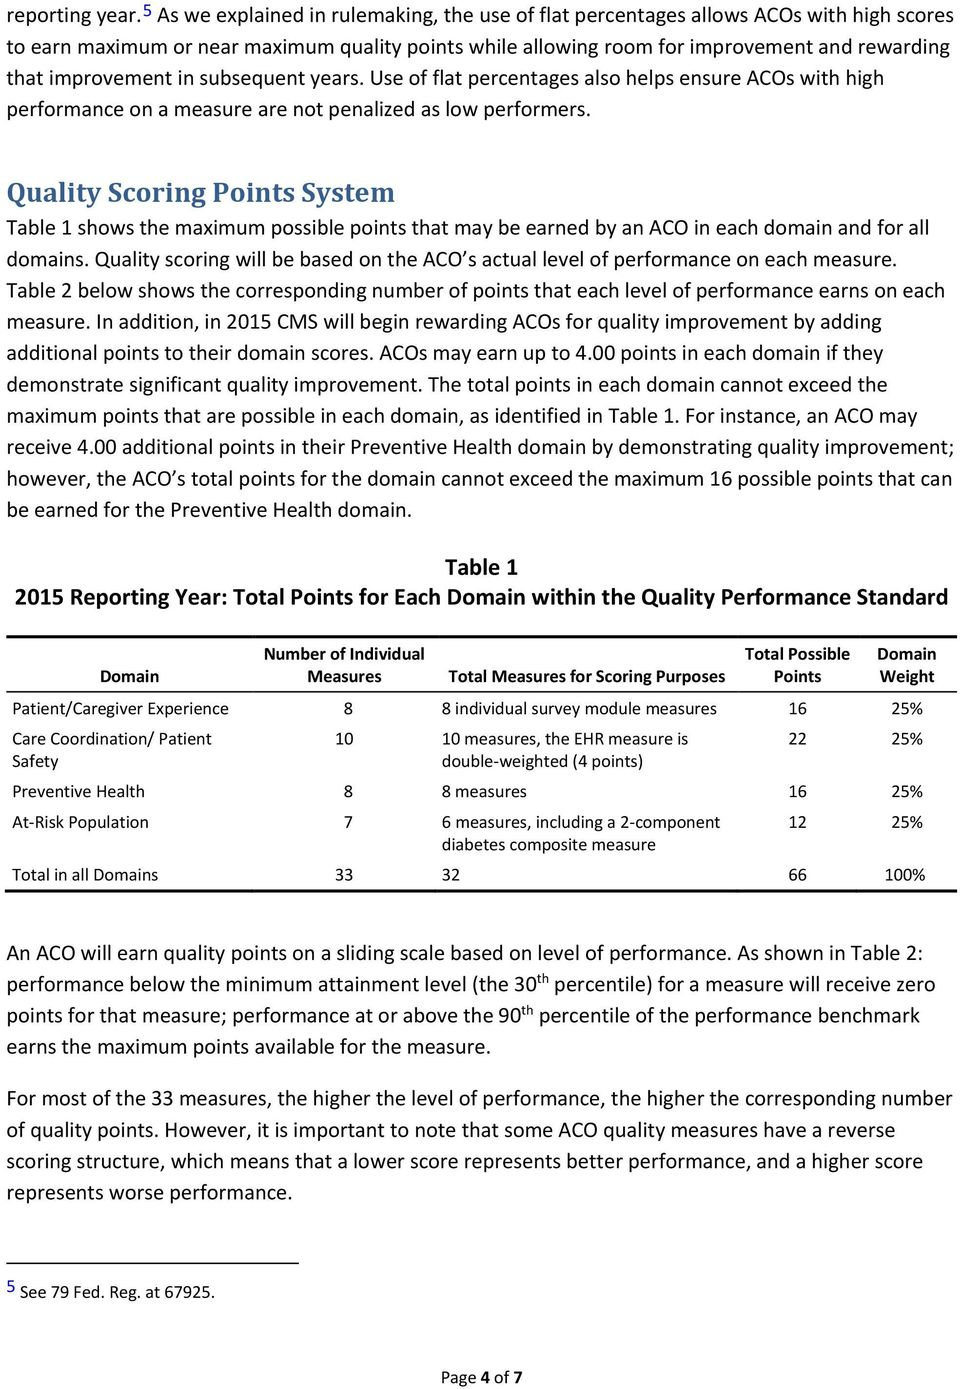 improvement in subsequent years. Use of flat percentages also helps ensure ACOs with high performance on a measure are not penalized as low performers.